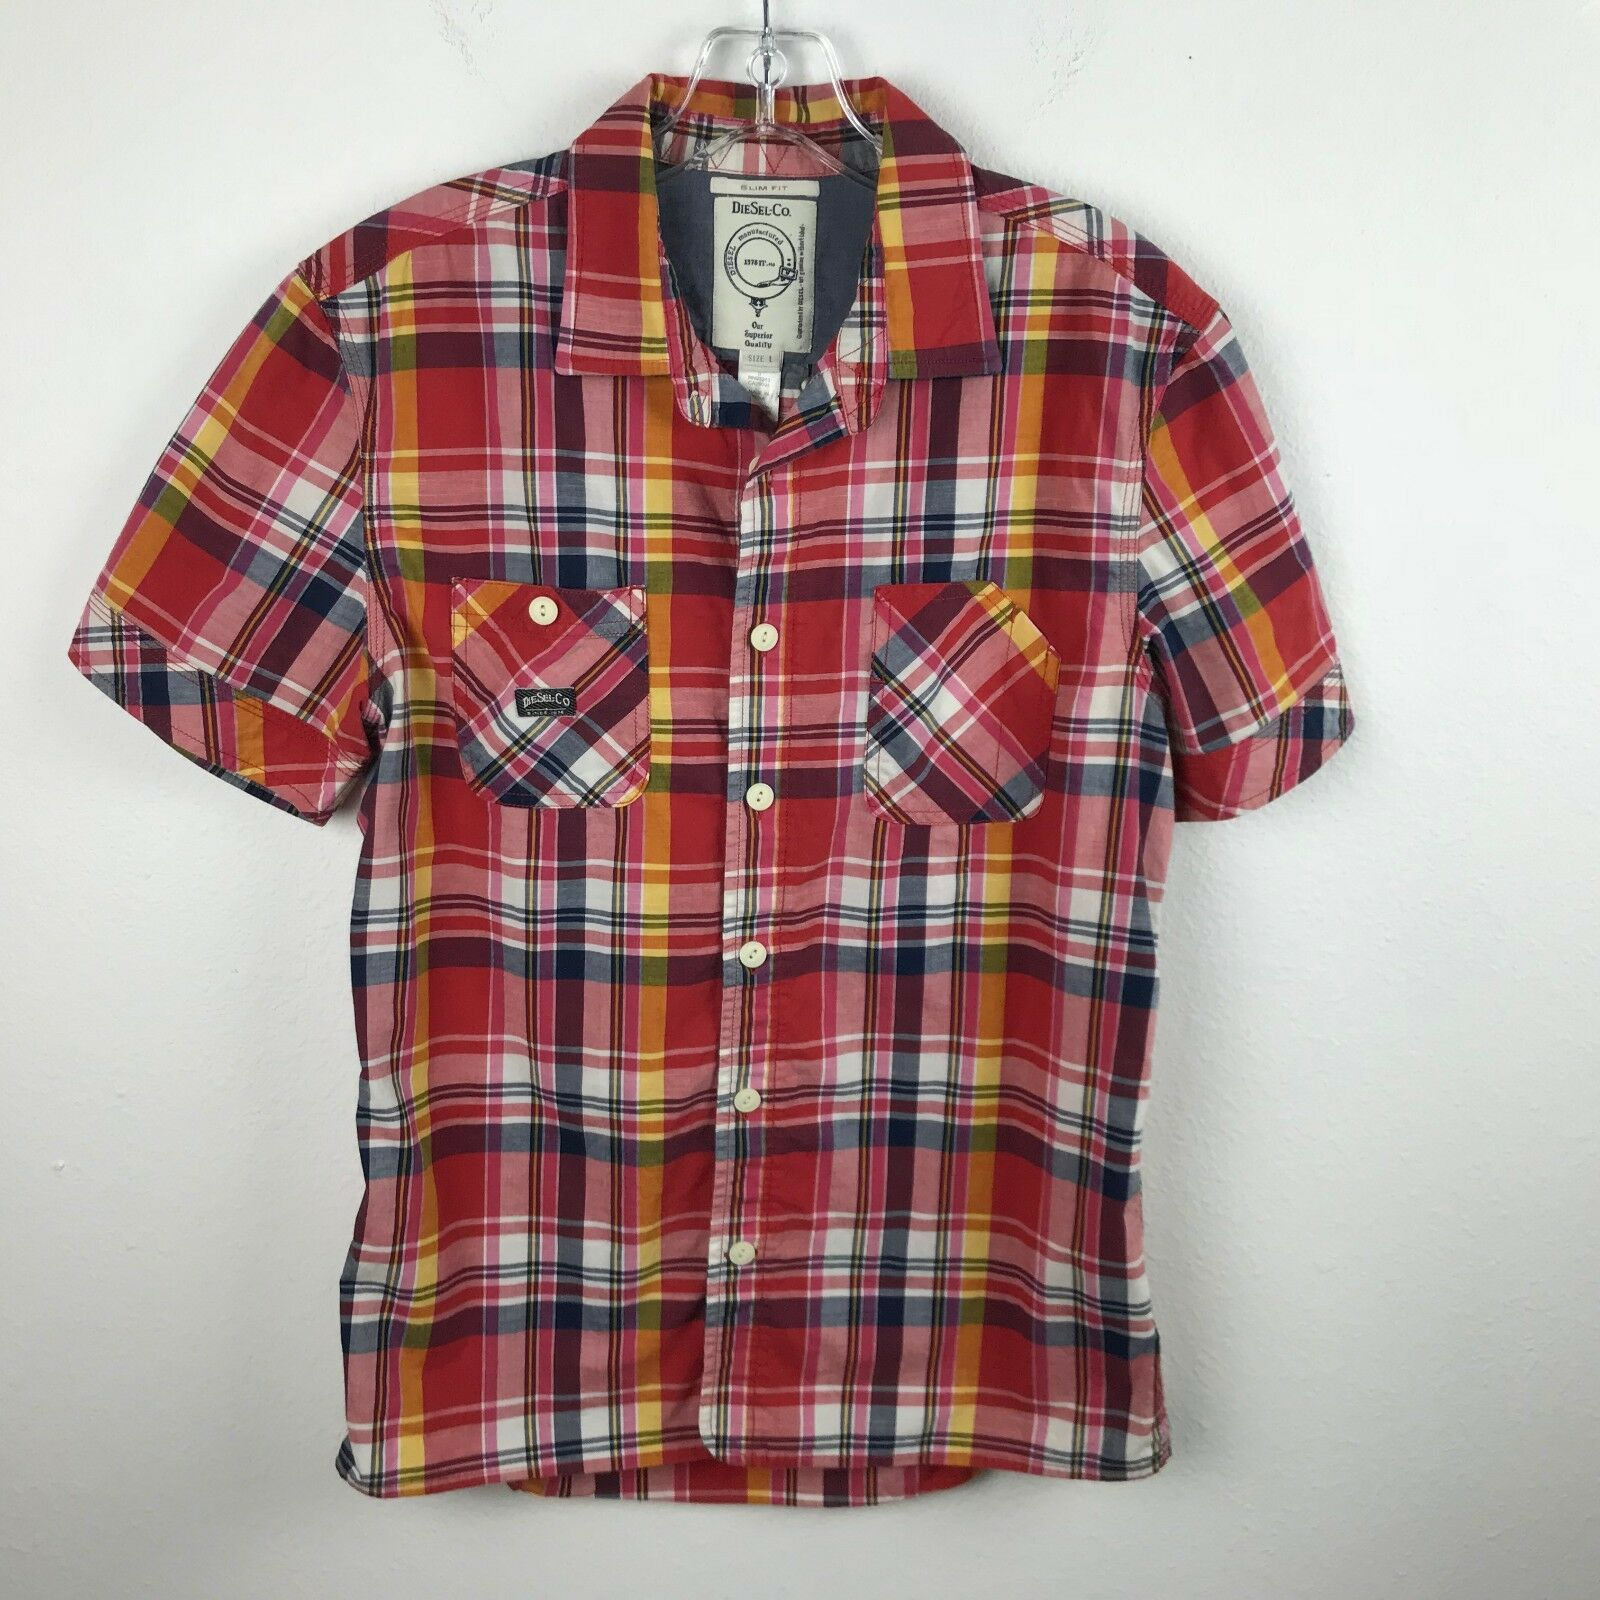 Mens Diesel Co Shirt Slim Fit Size L Red bluee Plaid Short Sleeve Button Front